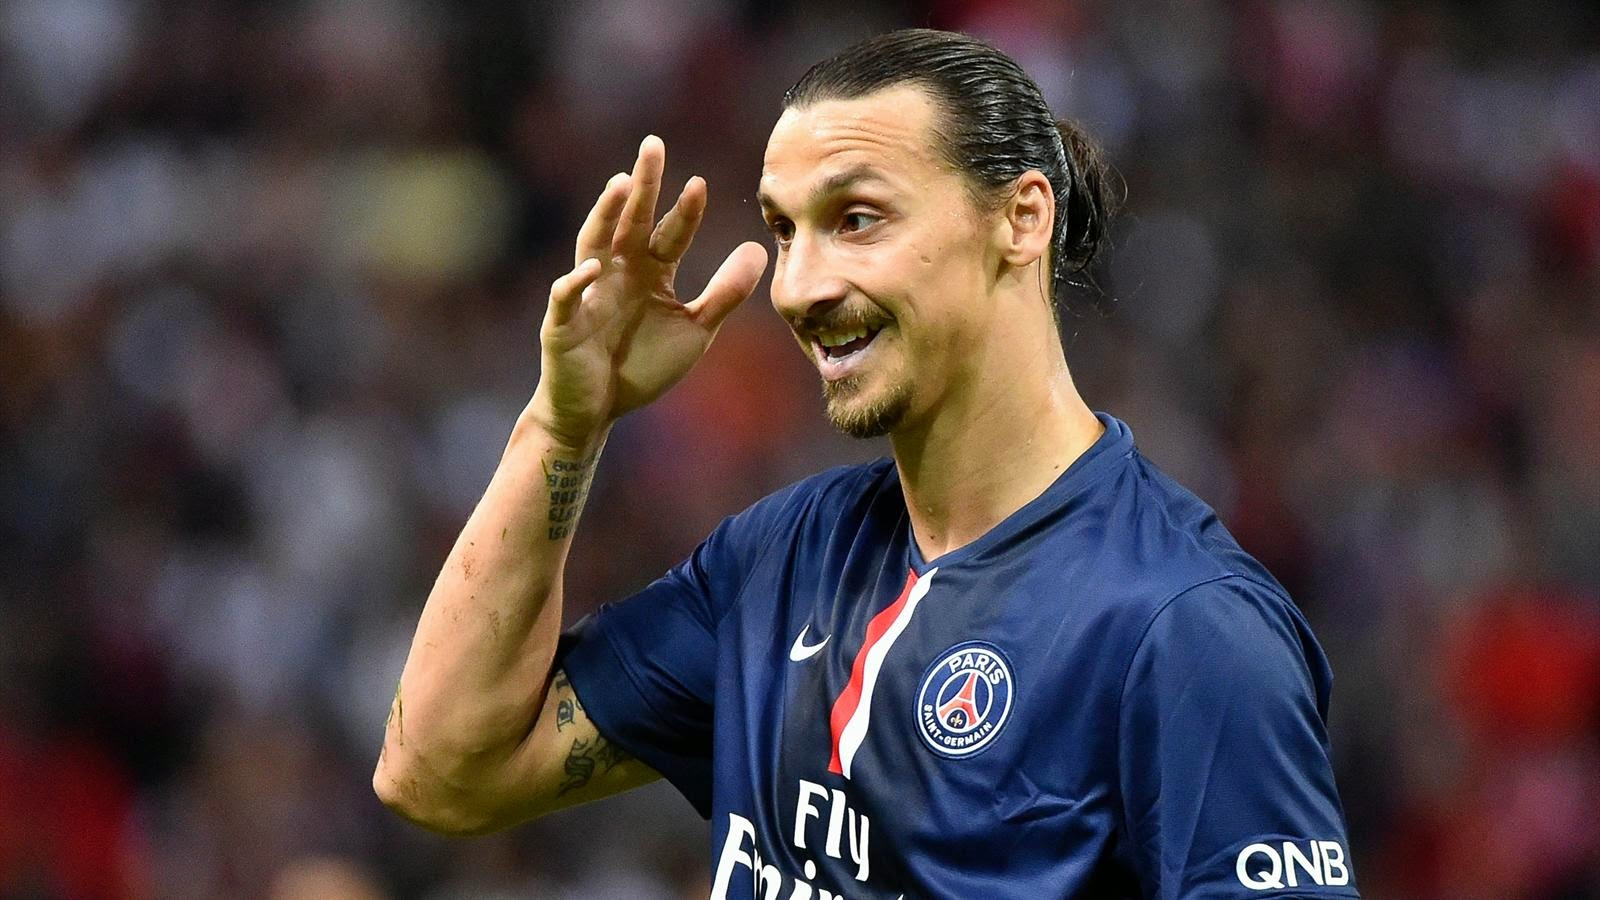 zlatan-ibrahimovic-biography-facts-age-height-Girlfriend-2017-Images